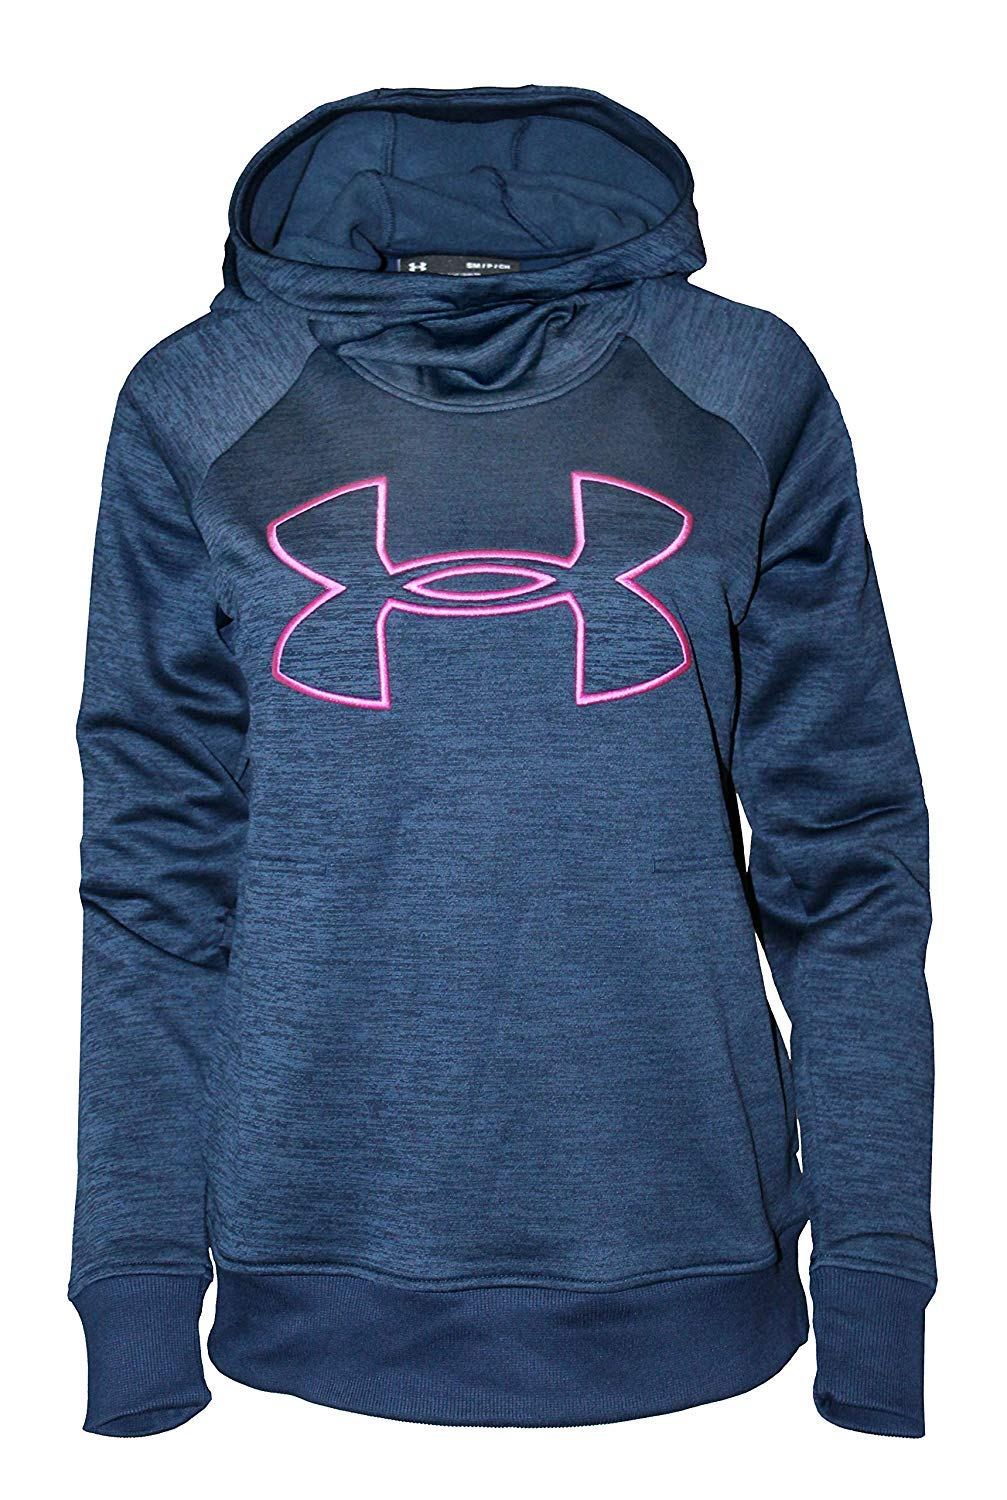 Under Armour Womens Hoodie Active Big Logo Pullover (Academy, X-Small) by Under Armour